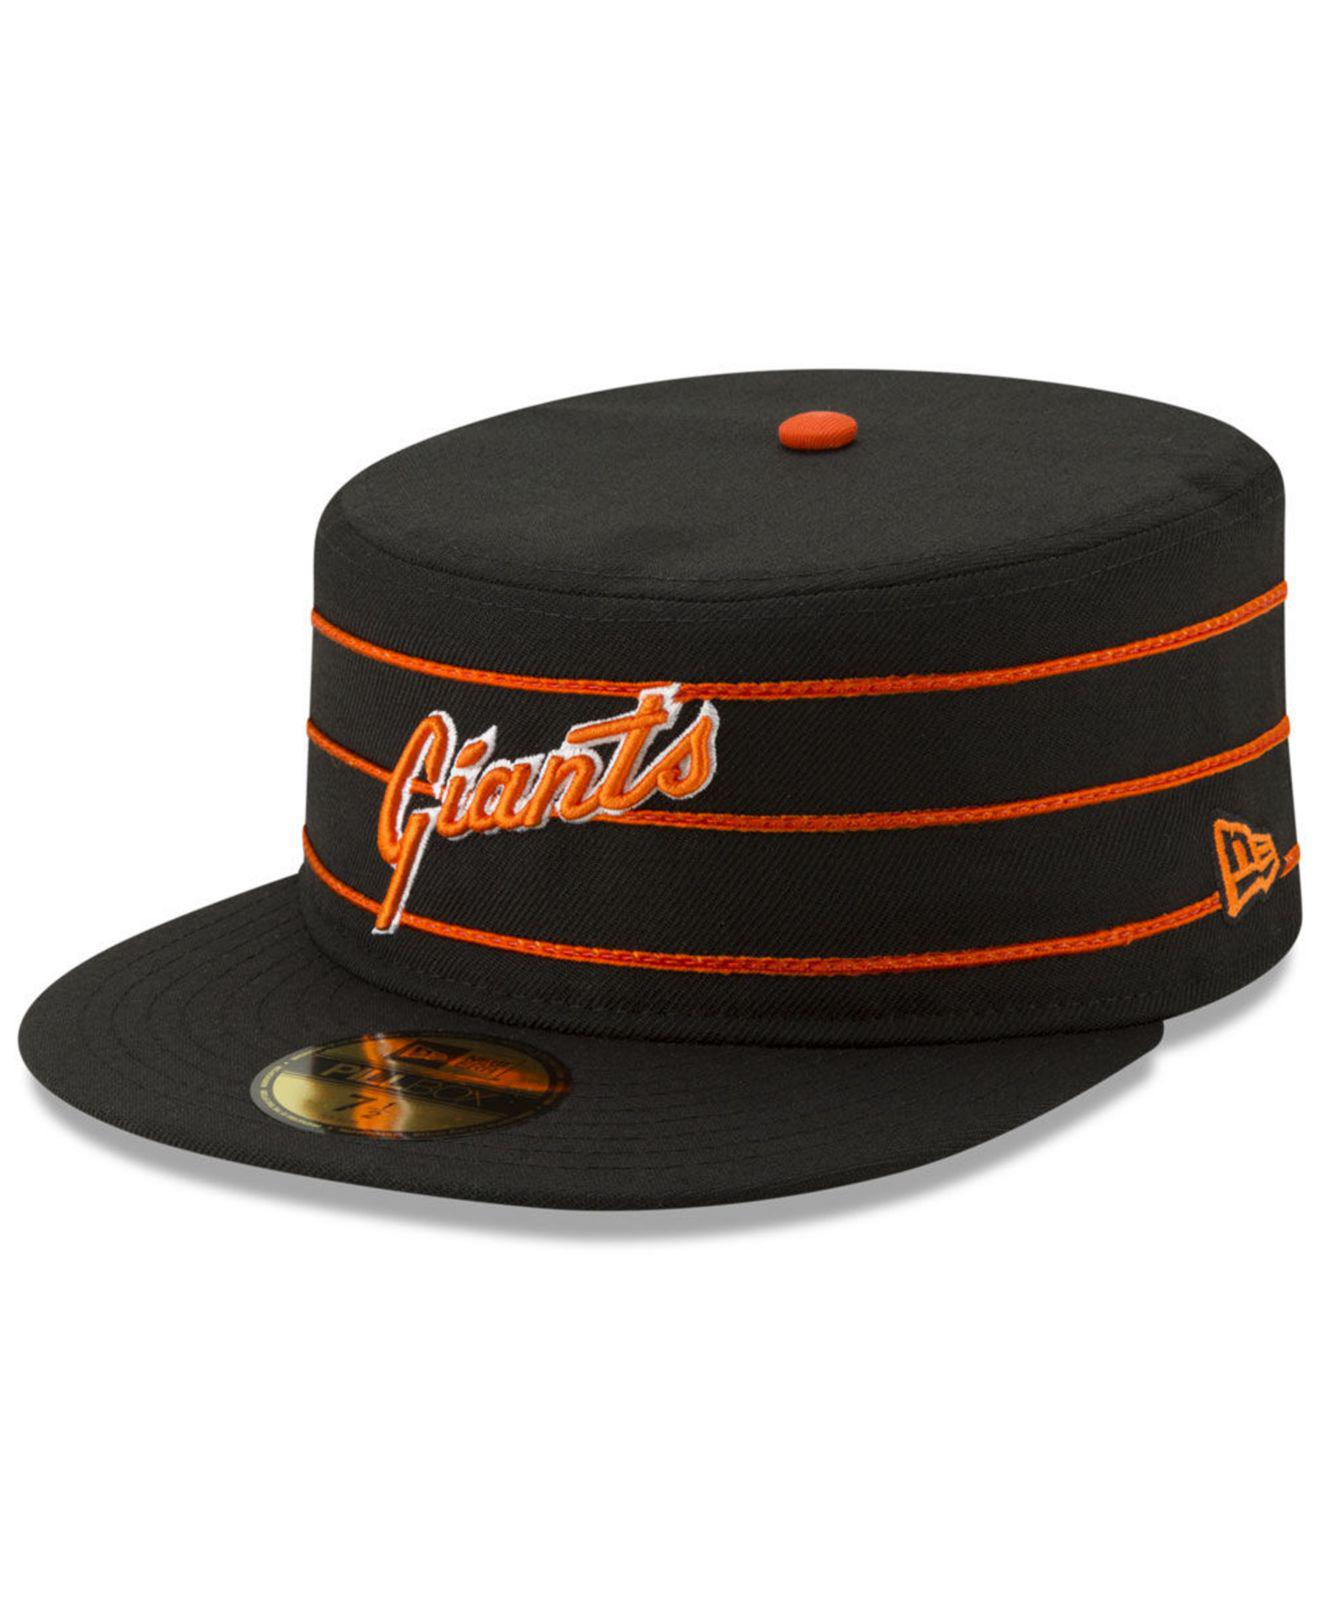 5ddfeedebfb09 ... clearance ktz. mens black san francisco giants pillbox 59fifty fitted  cap 9e25f c8721